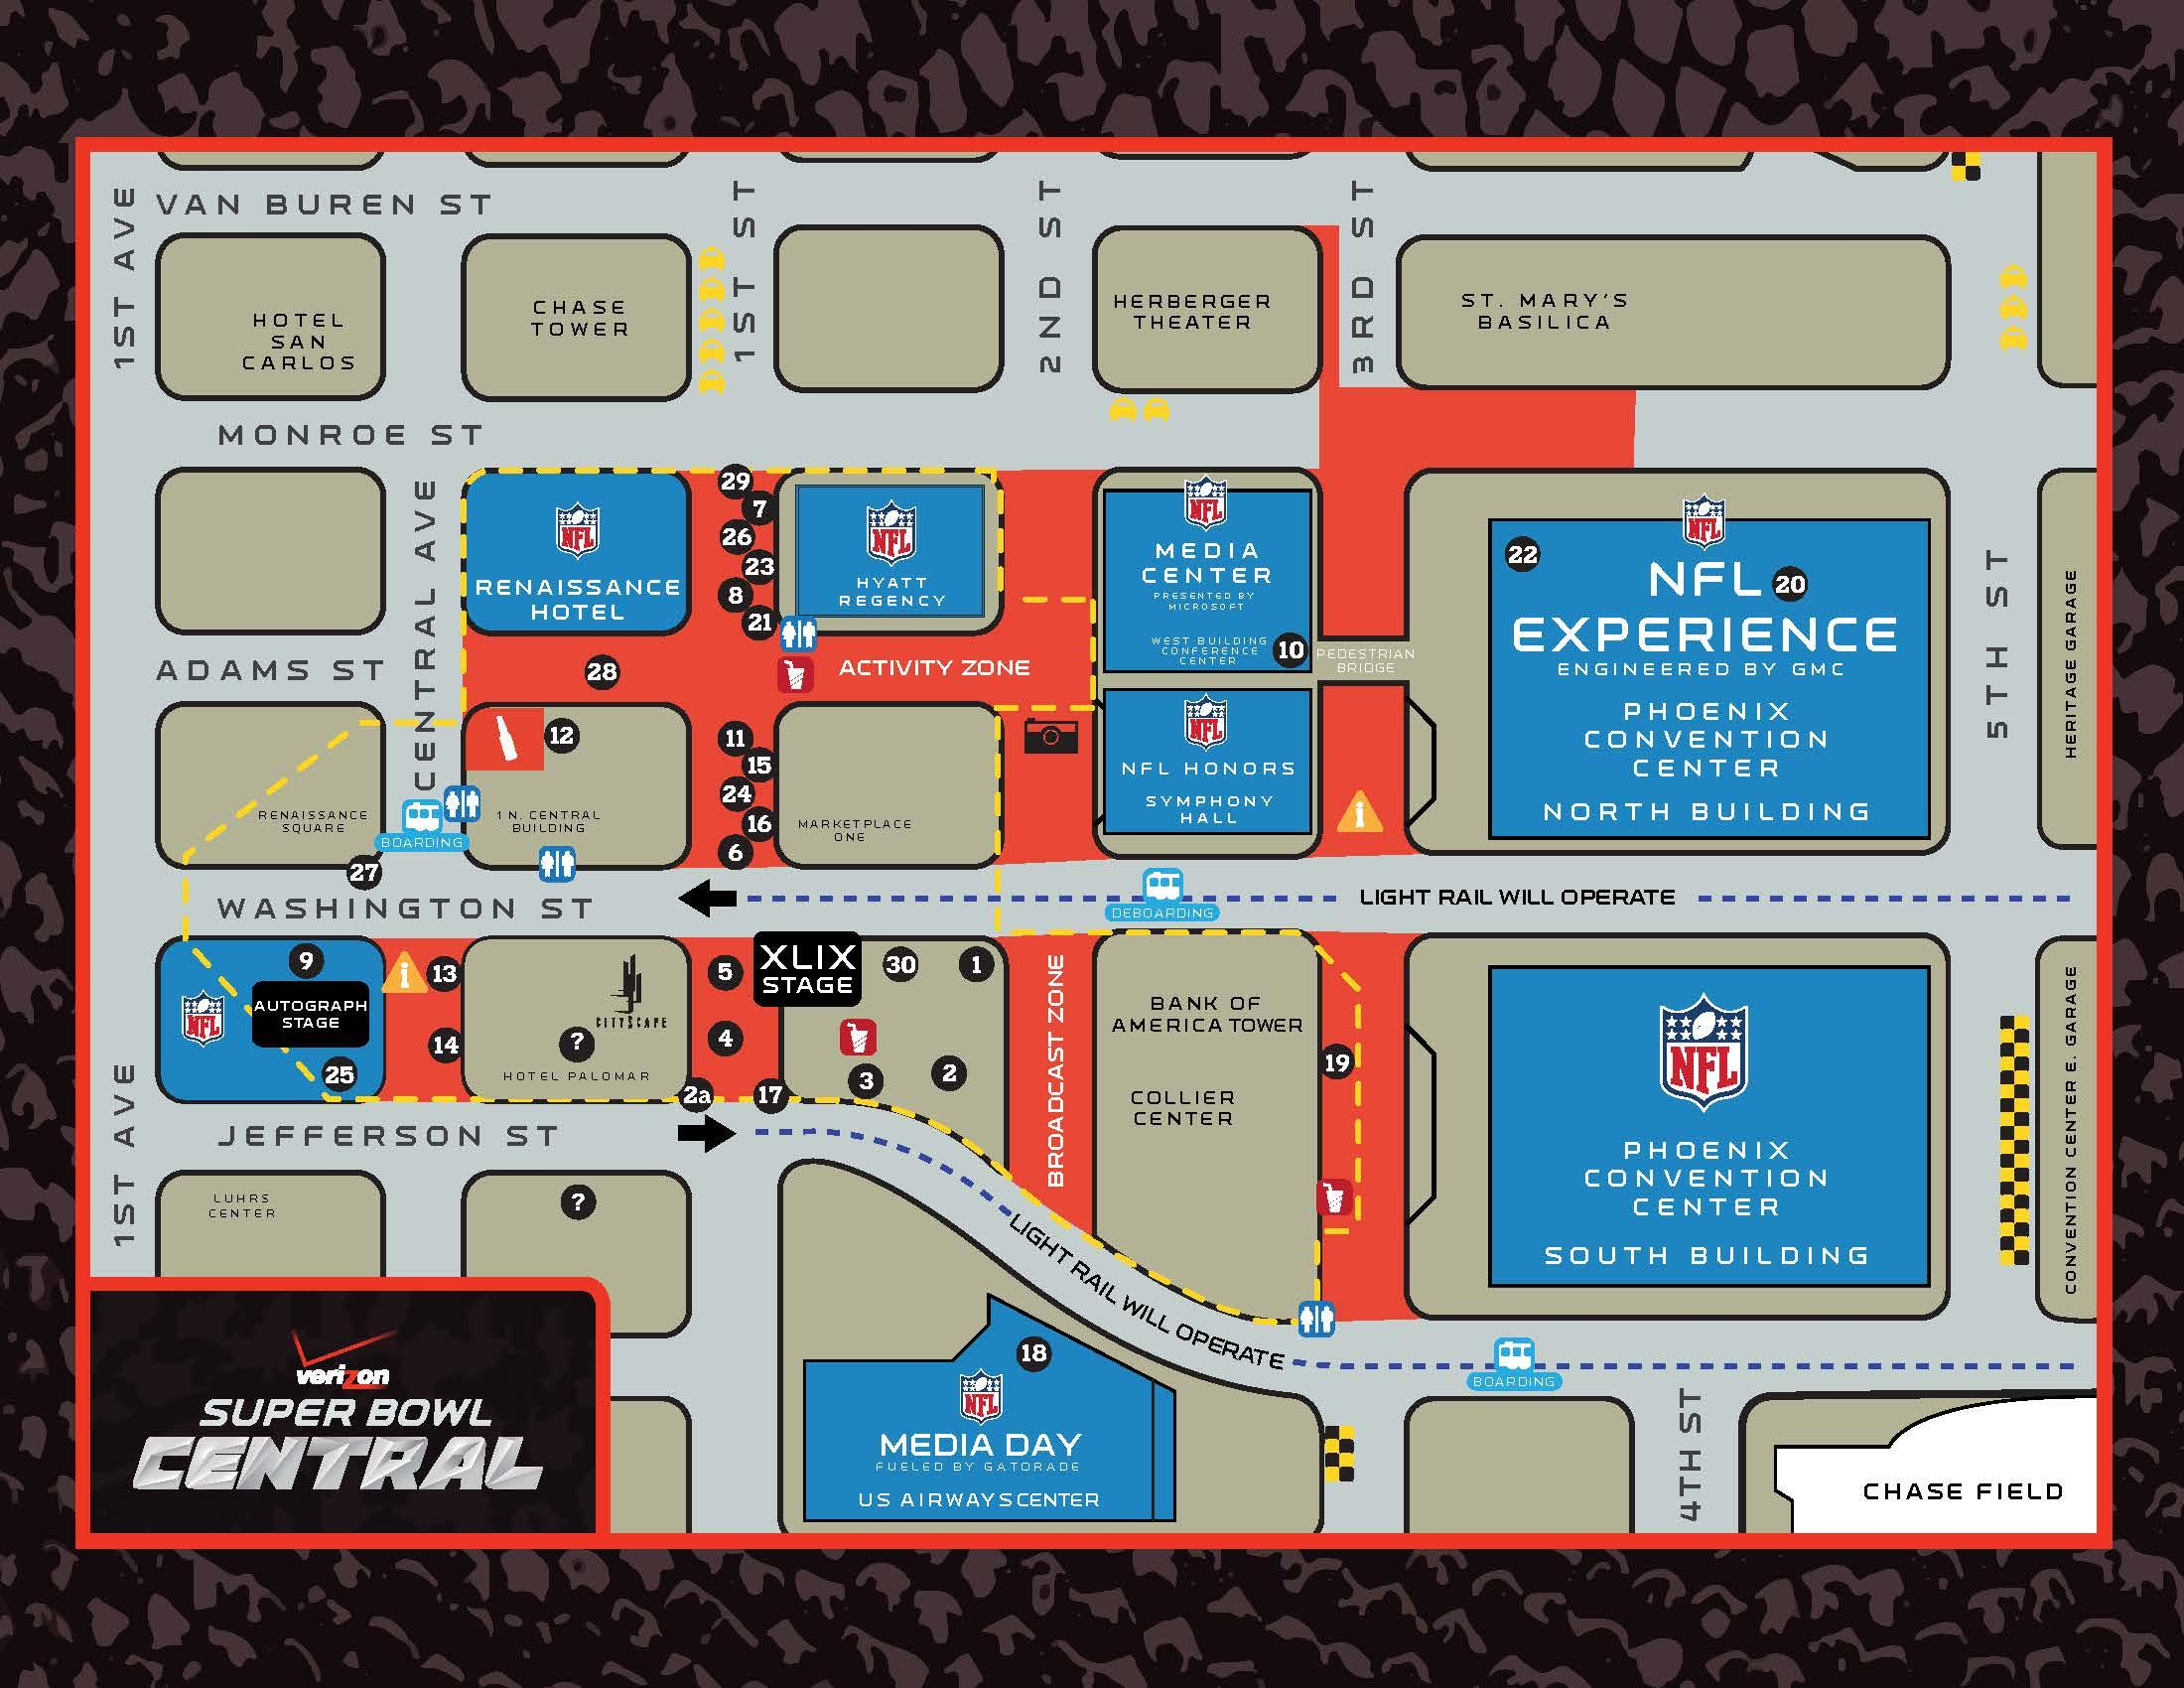 Verizon Super Bowl Central Map